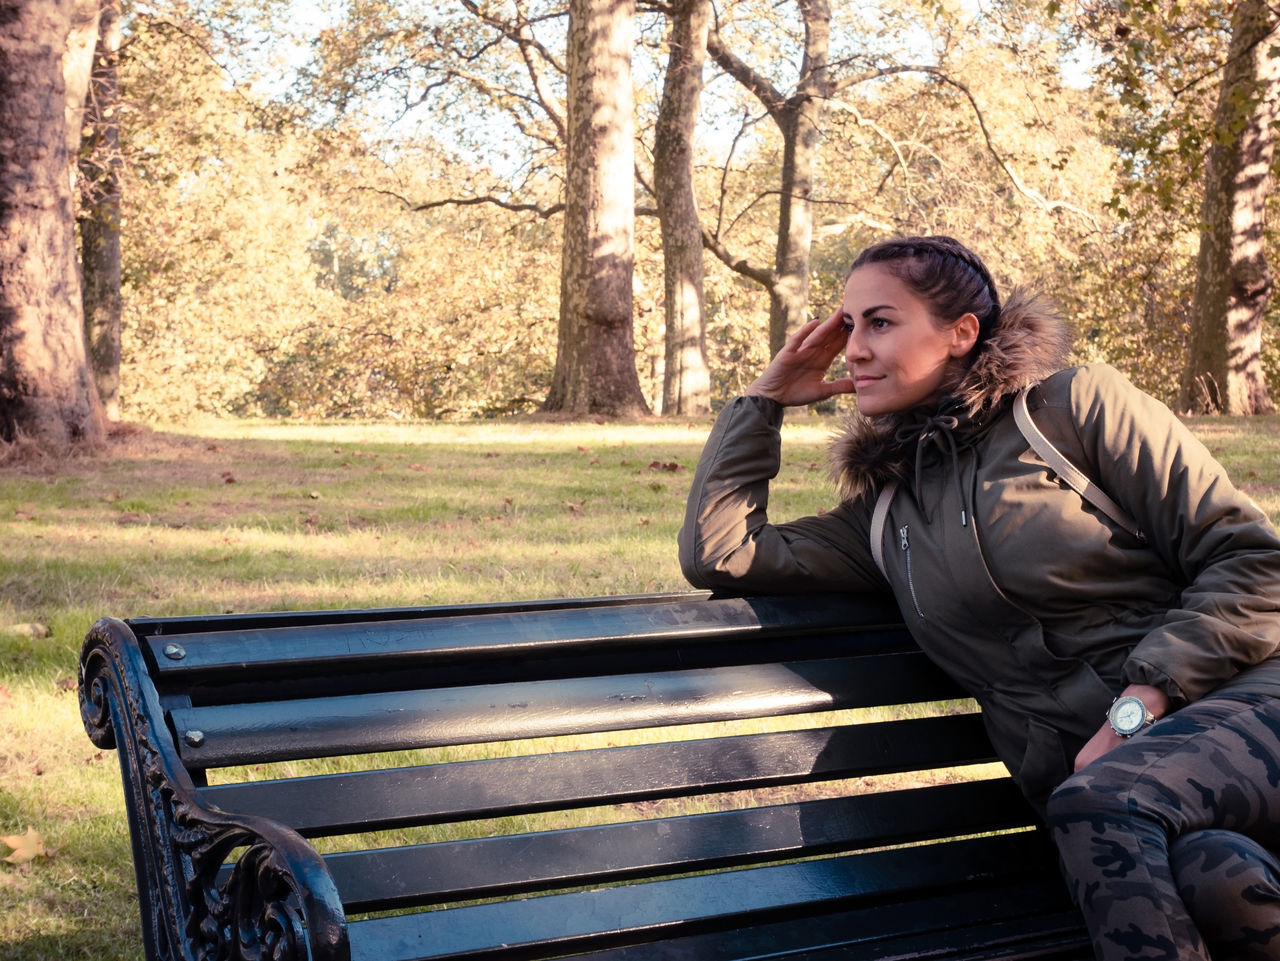 Young Woman Relaxing On Bench In Park